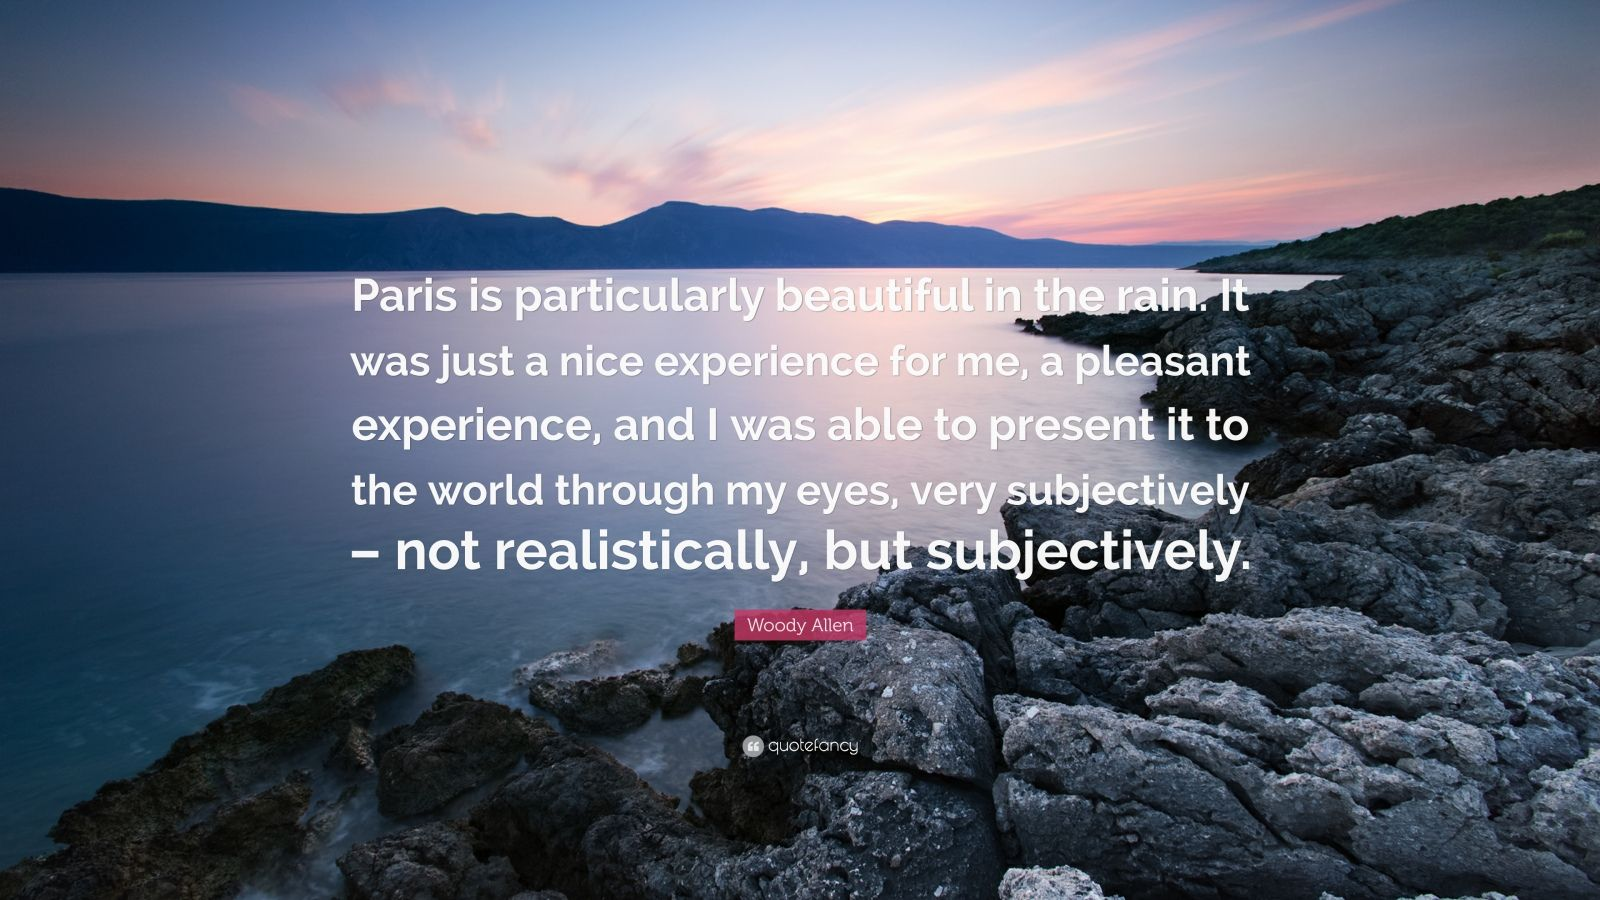 """Woody Allen Quote: """"Paris is particularly beautiful in the rain. It was just a nice experience for me, a pleasant experience, and I was able to present it to the world through my eyes, very subjectively – not realistically, but subjectively."""""""